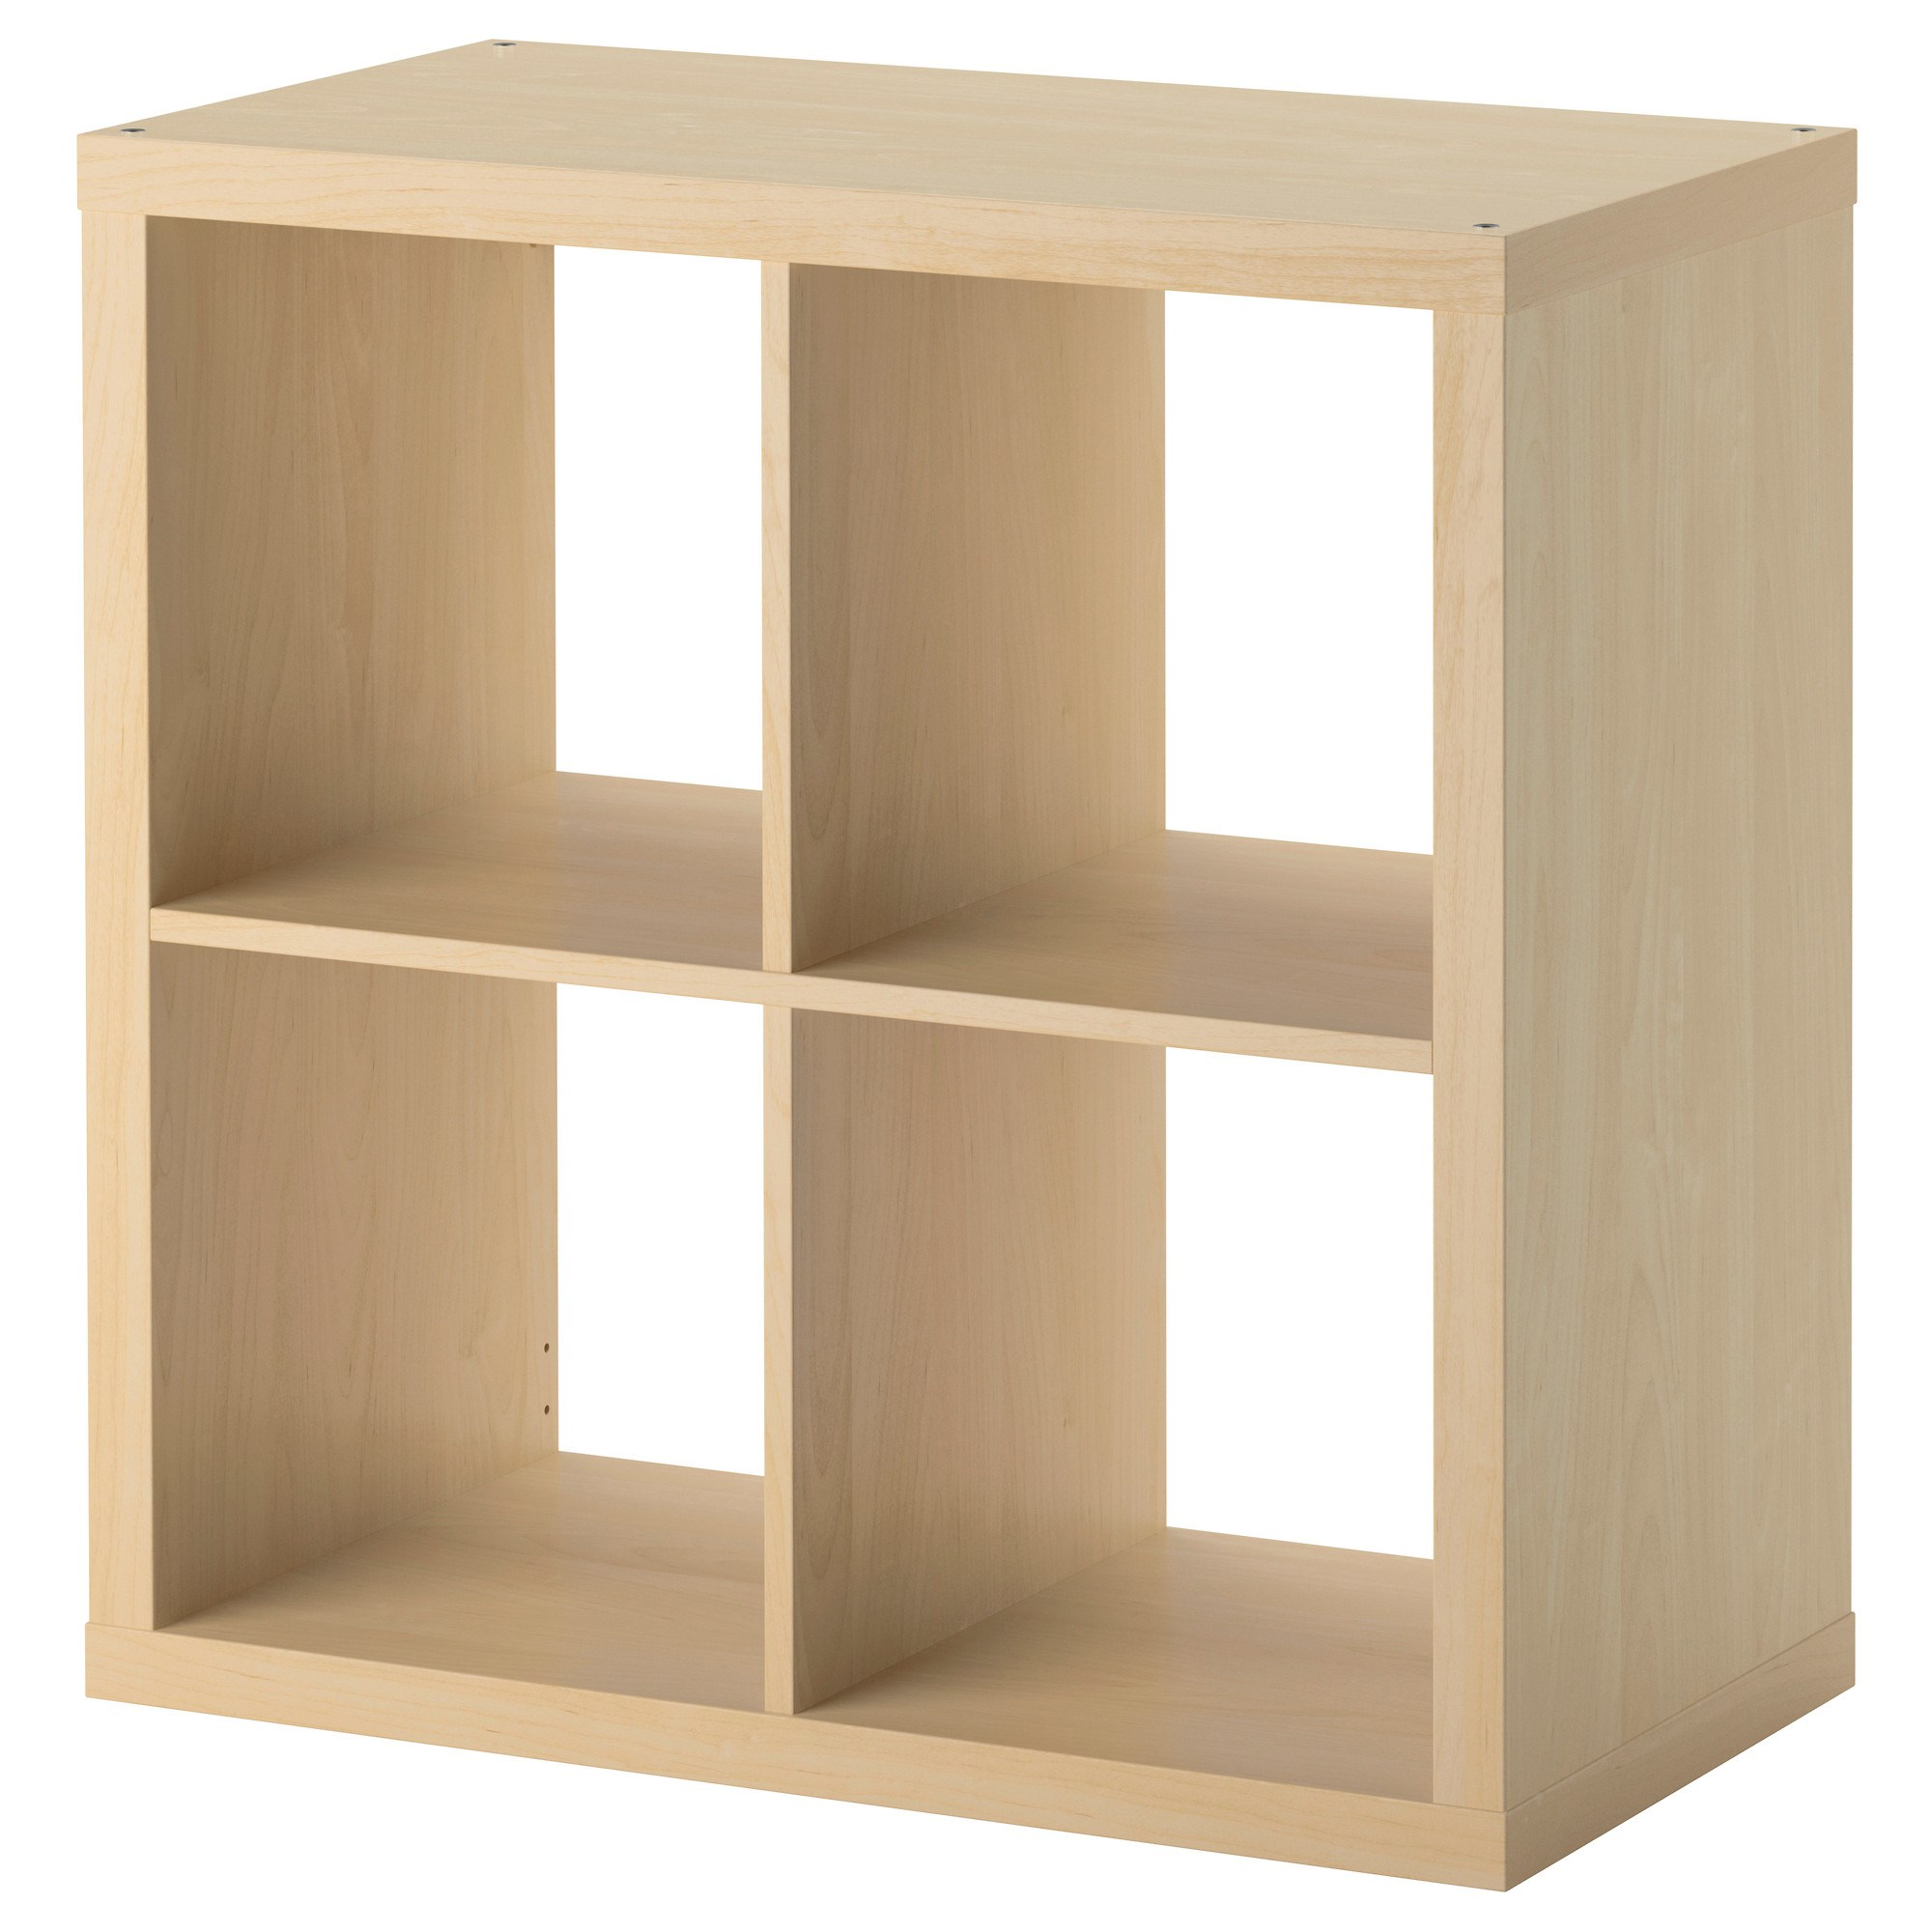 Kallax Shelving Unit With 4 Compartments Birch Effect 77x39x77 Cm  # Notice Expedit